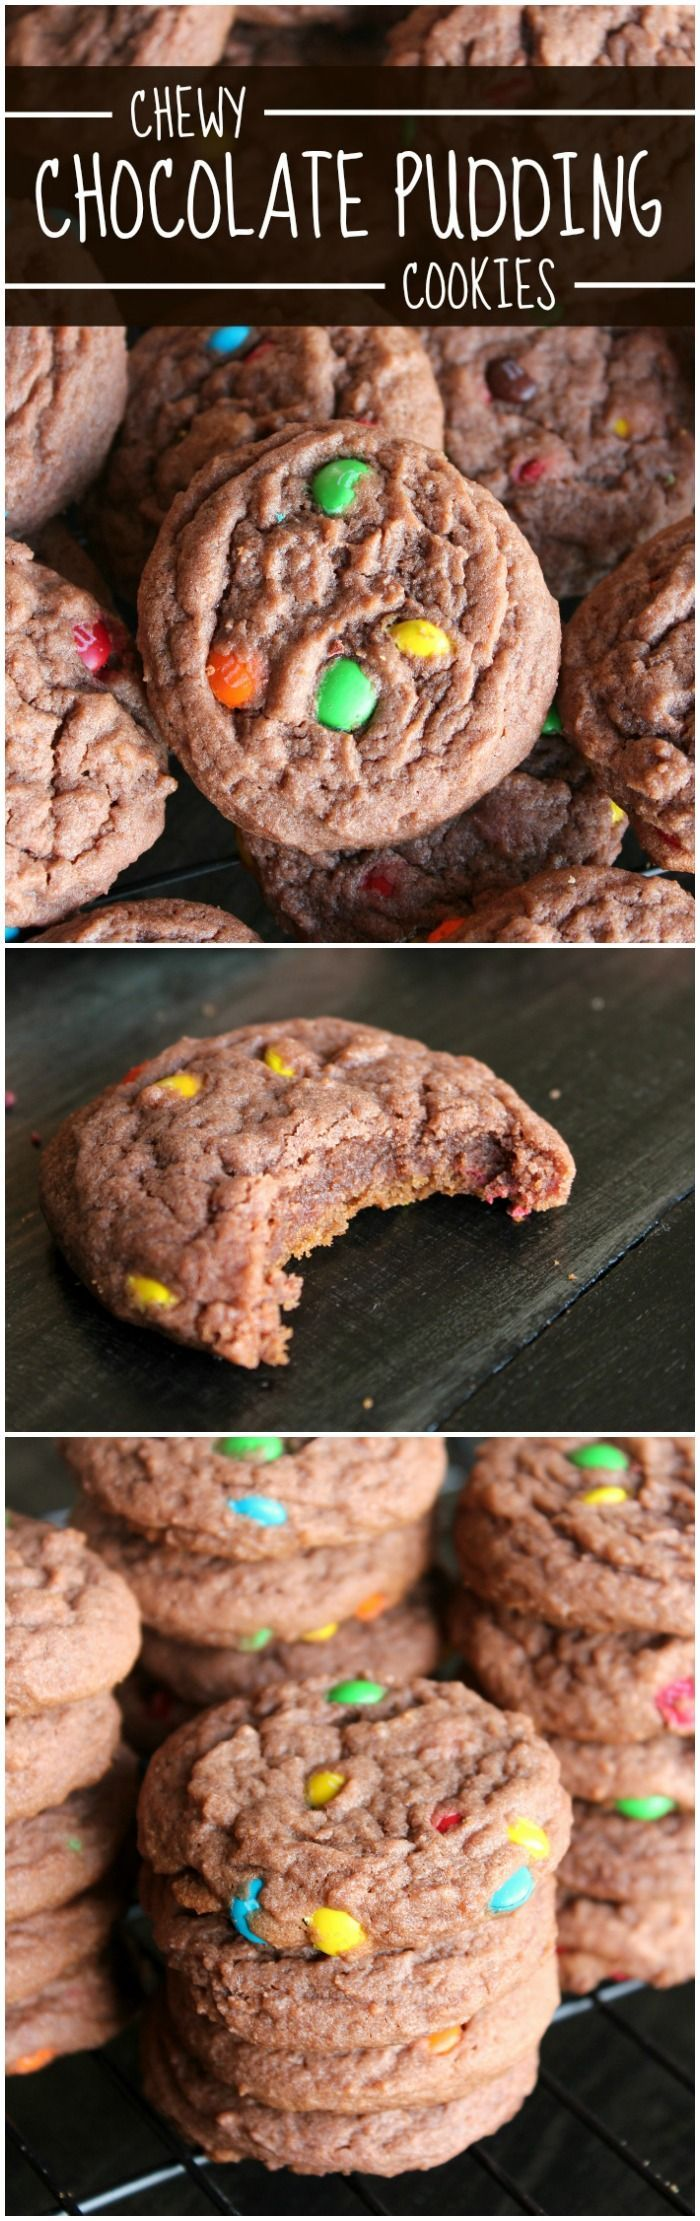 These Chewy Chocolate Pudding Cookies may just be the softest, chewiest, most delicious cookies ever! They will melt in your mouth!